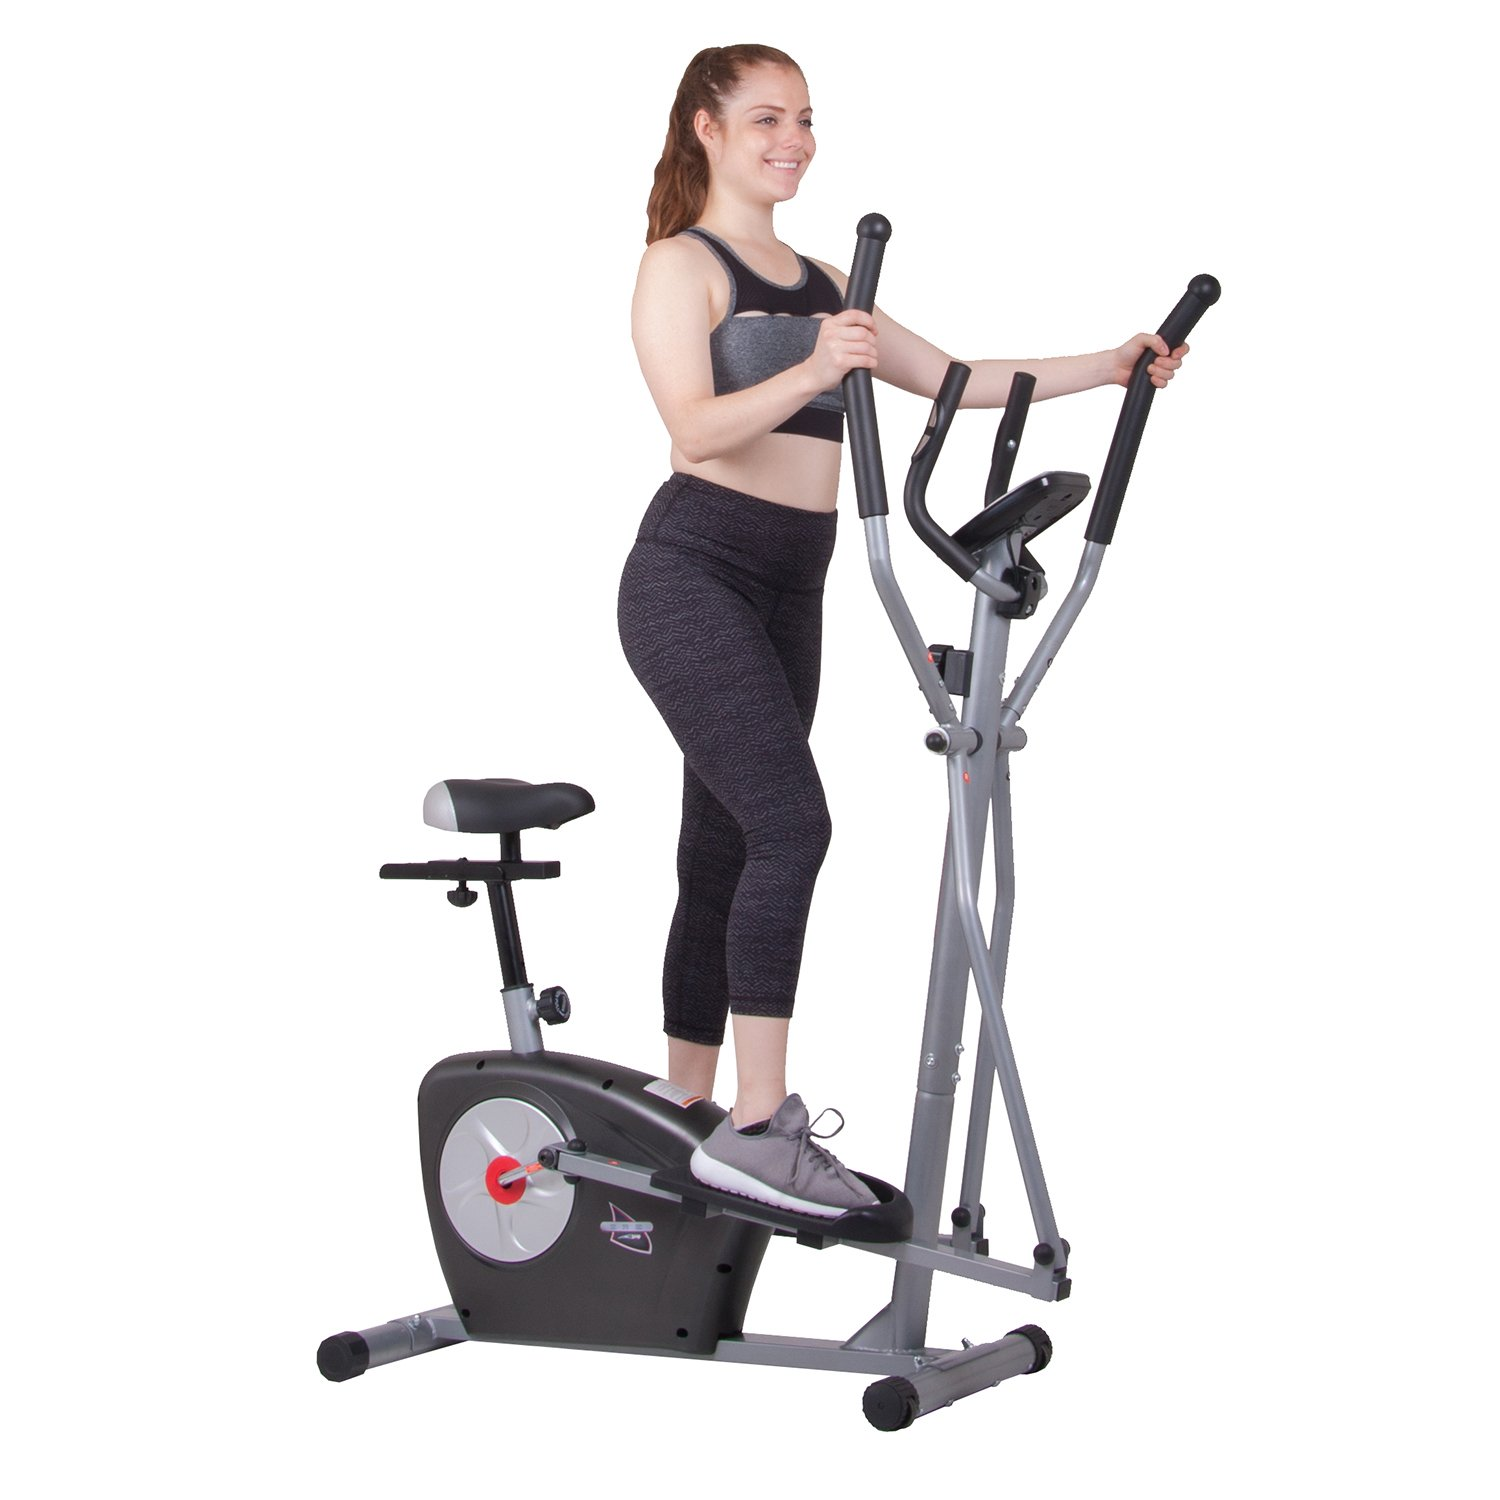 Elliptical Trainer and Exercise Bike with Seat and Heart Rate Pulse Sensors Dual Trainer BRM3635 Cardio Upper and Lower Full Body Workout Multi Trainer by Body Rider